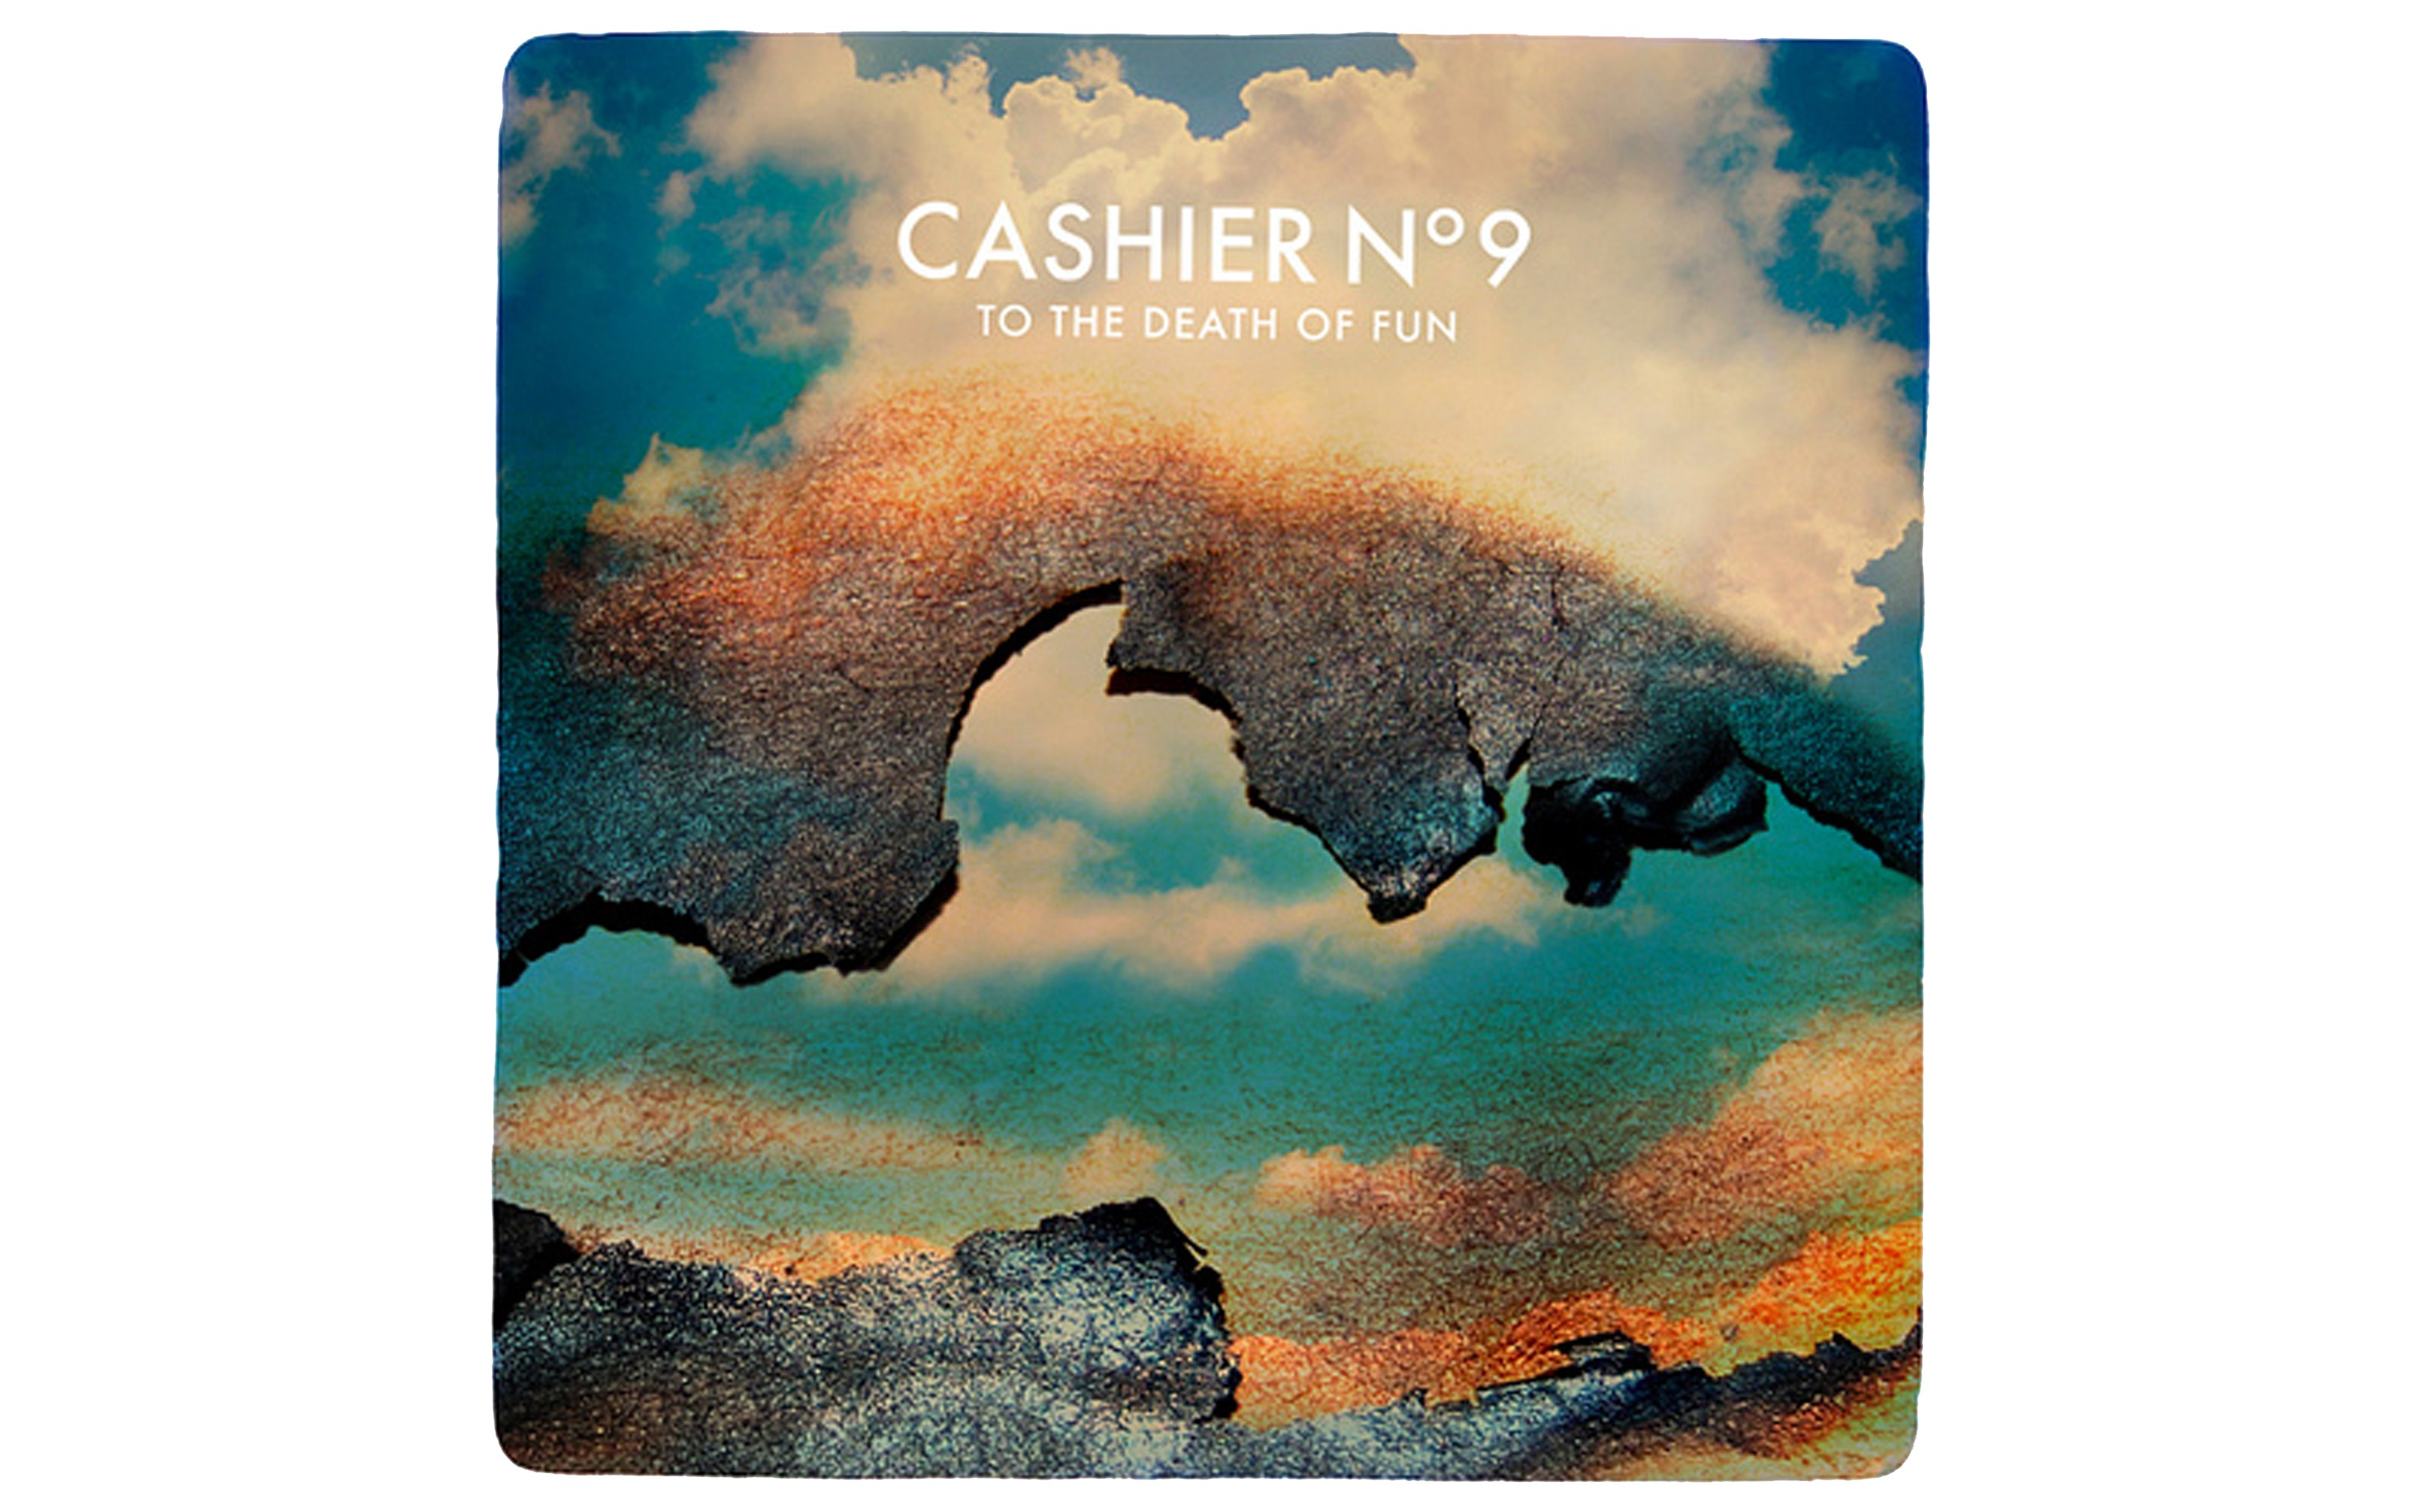 To the Death of Fun - BY CASHIER NO. 9 - BELLA UNION BY CASHIER NO. 9 - BELLA UNION